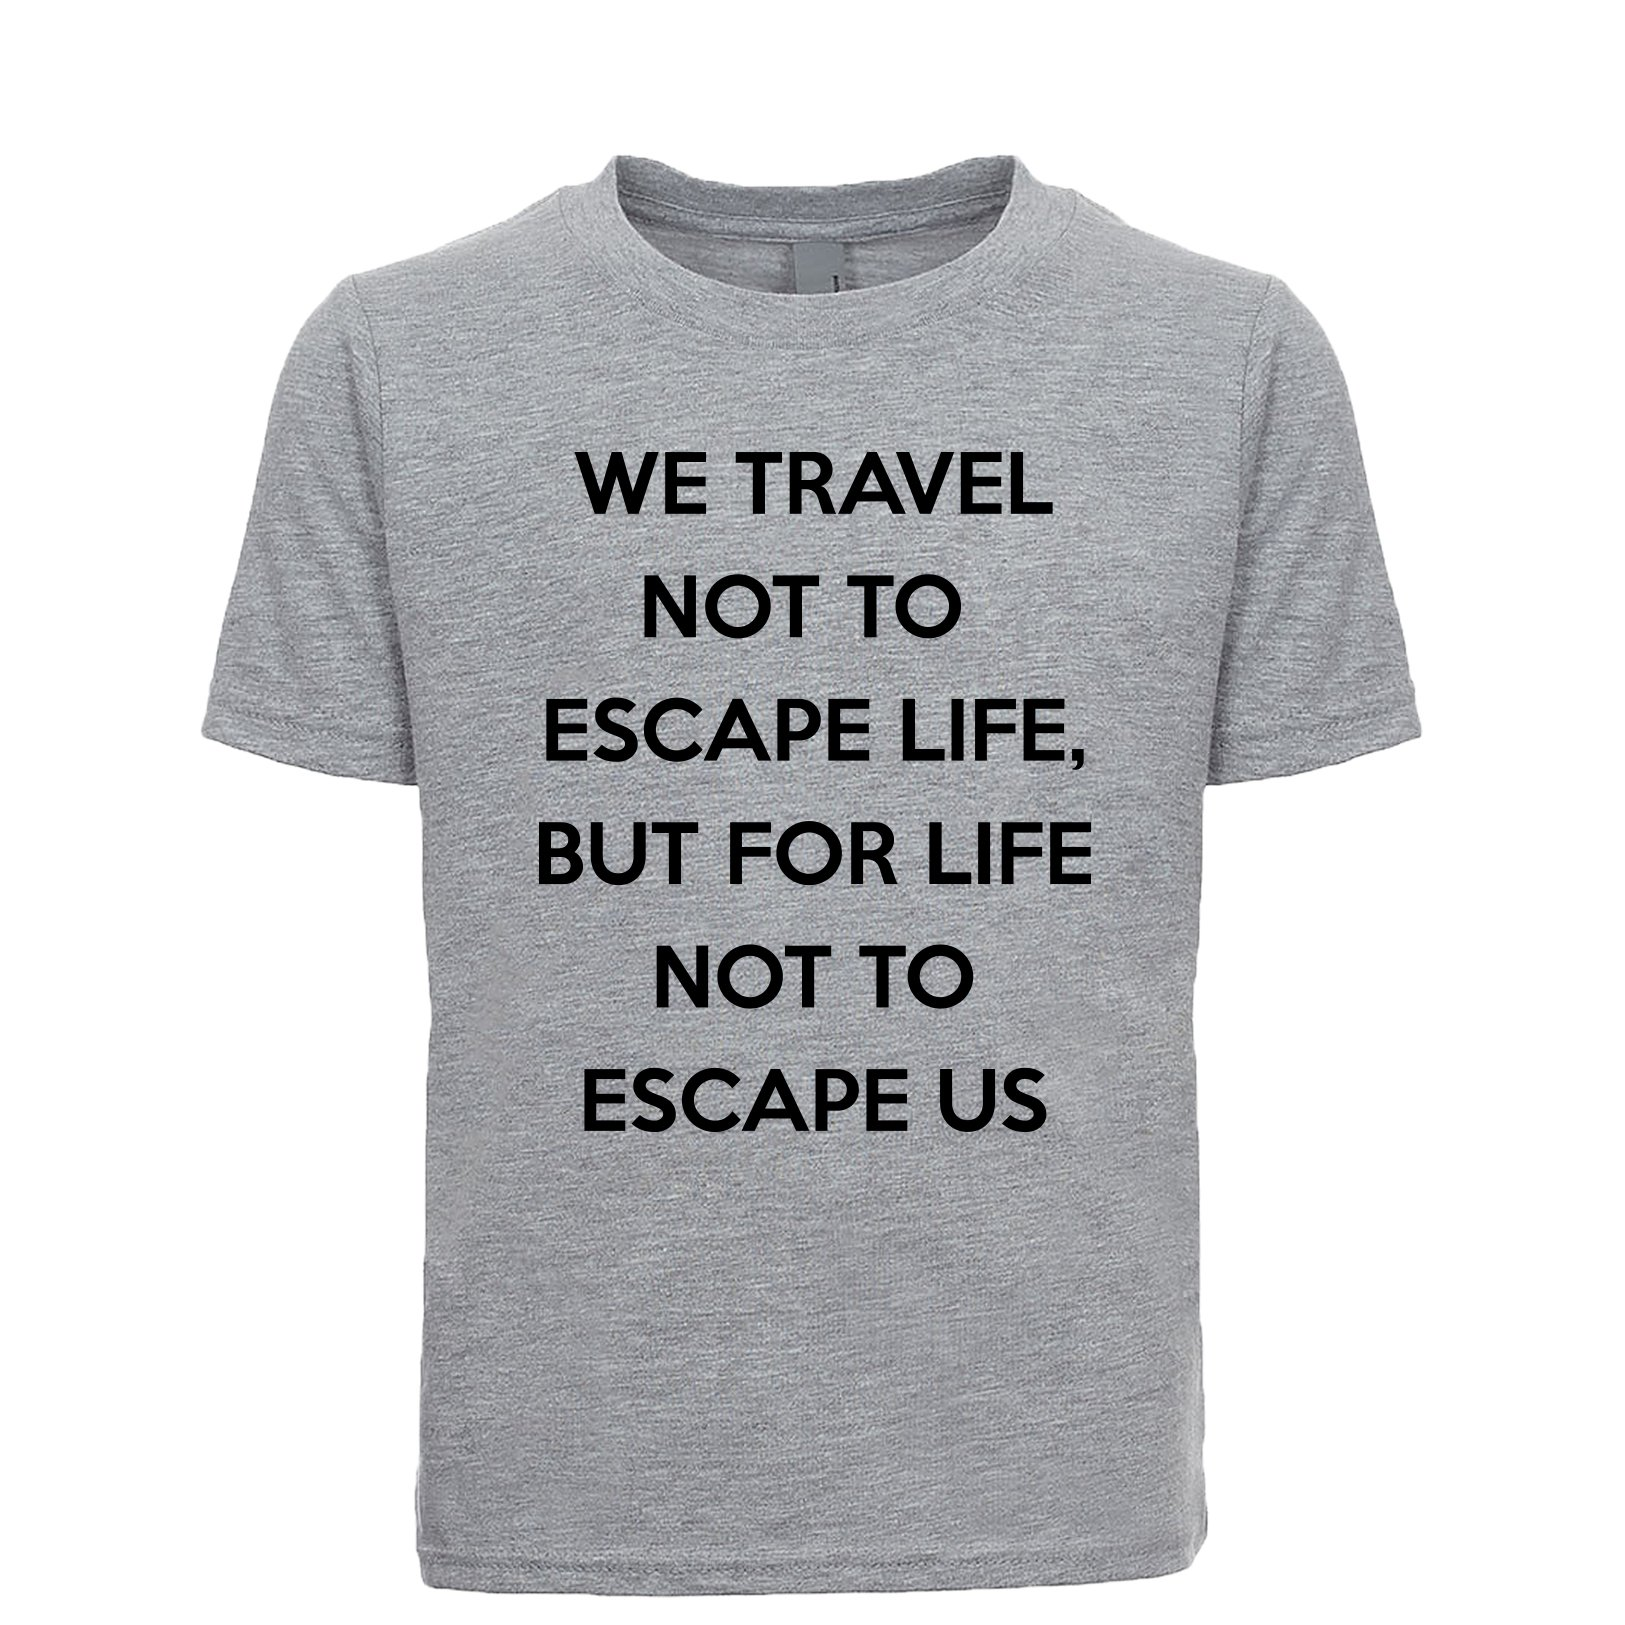 Shirtgoals We Travel Not To Escape Life But For Life Not To Escape Us Unisex Kids Tee Heather-Grey Small